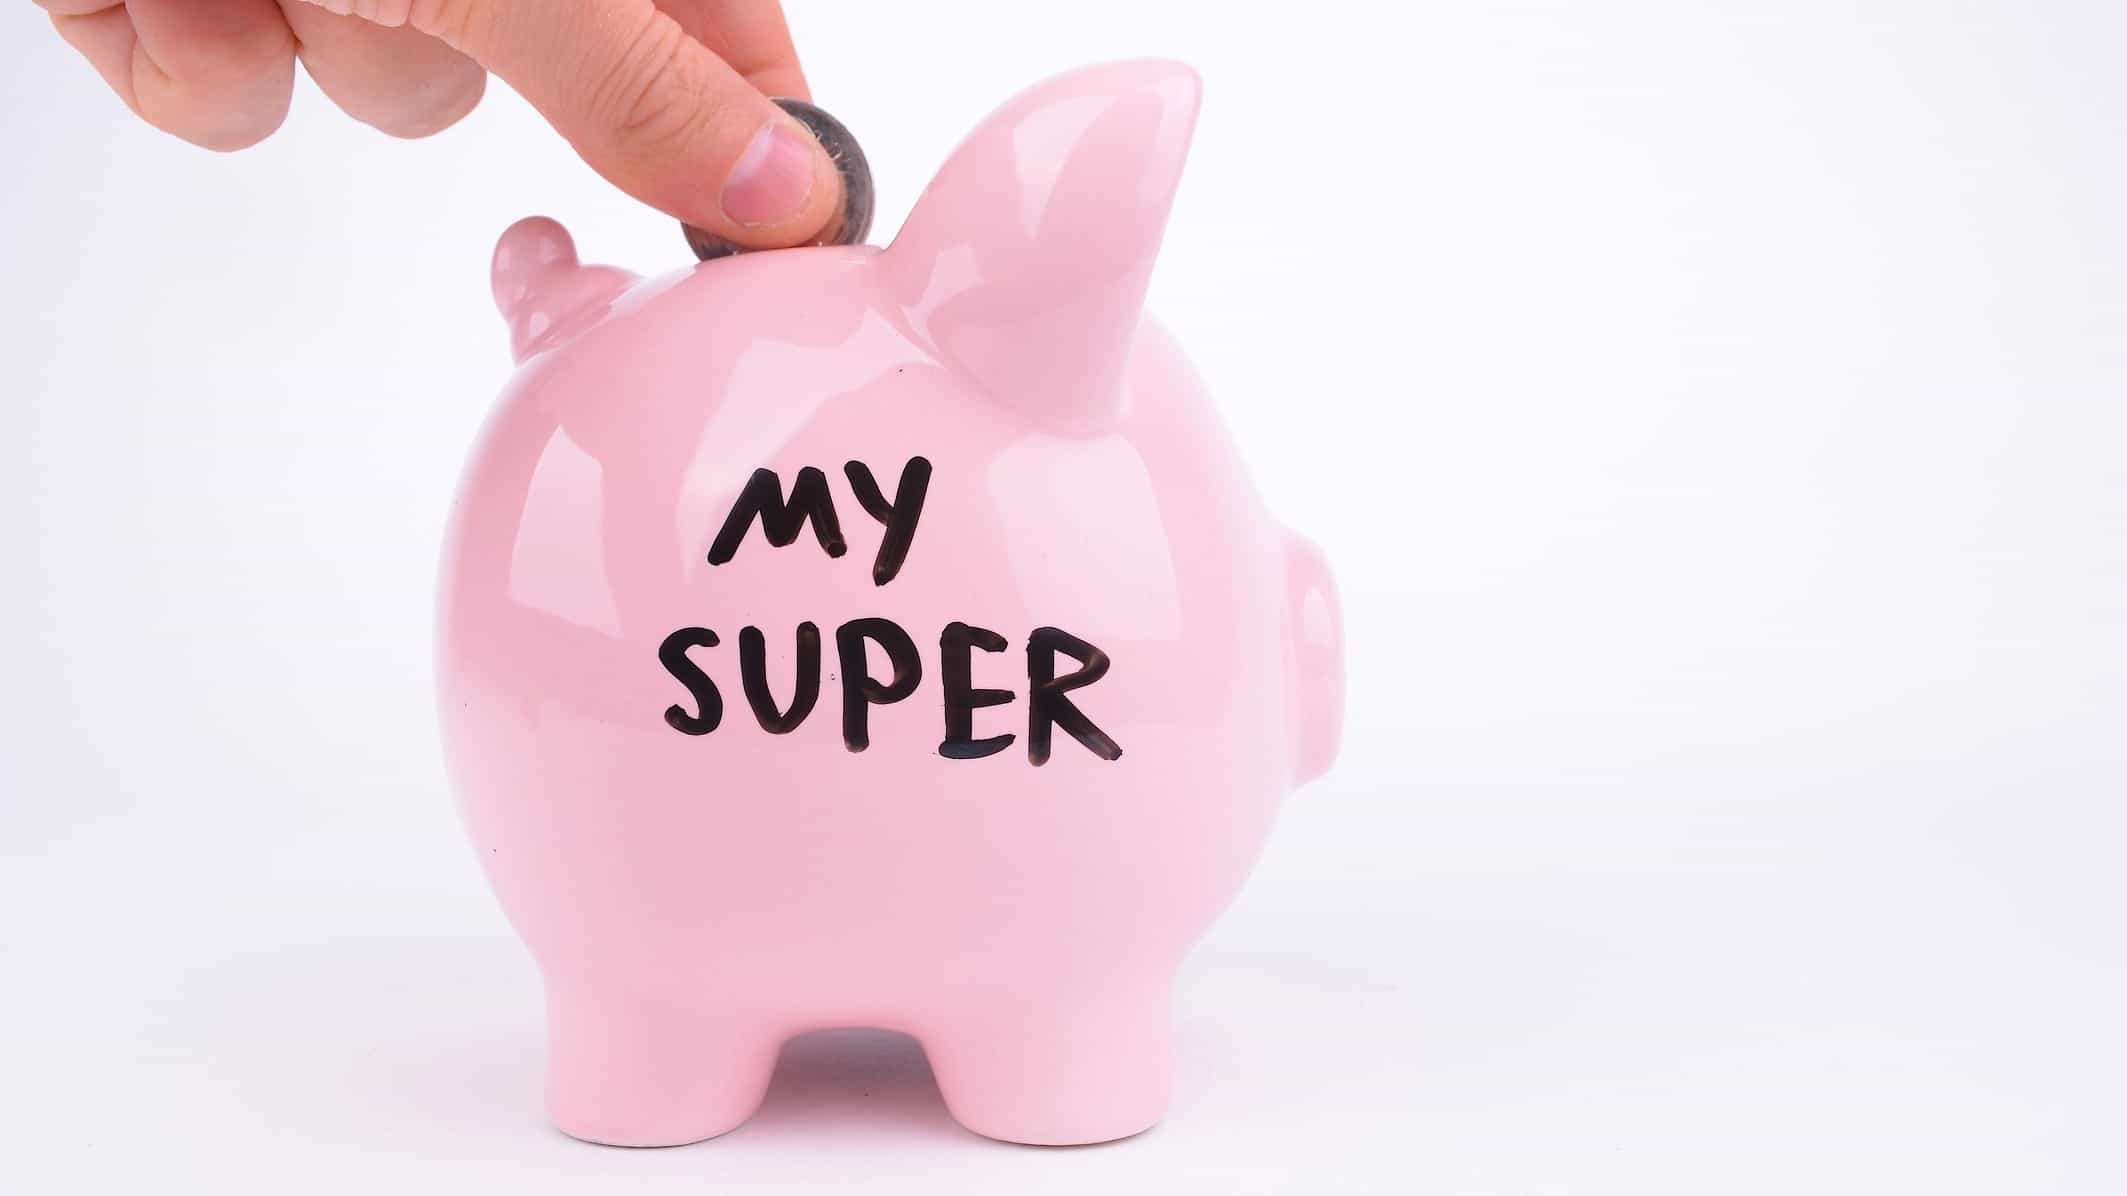 depositing coin into piggy bank for super, invest in super, grow super